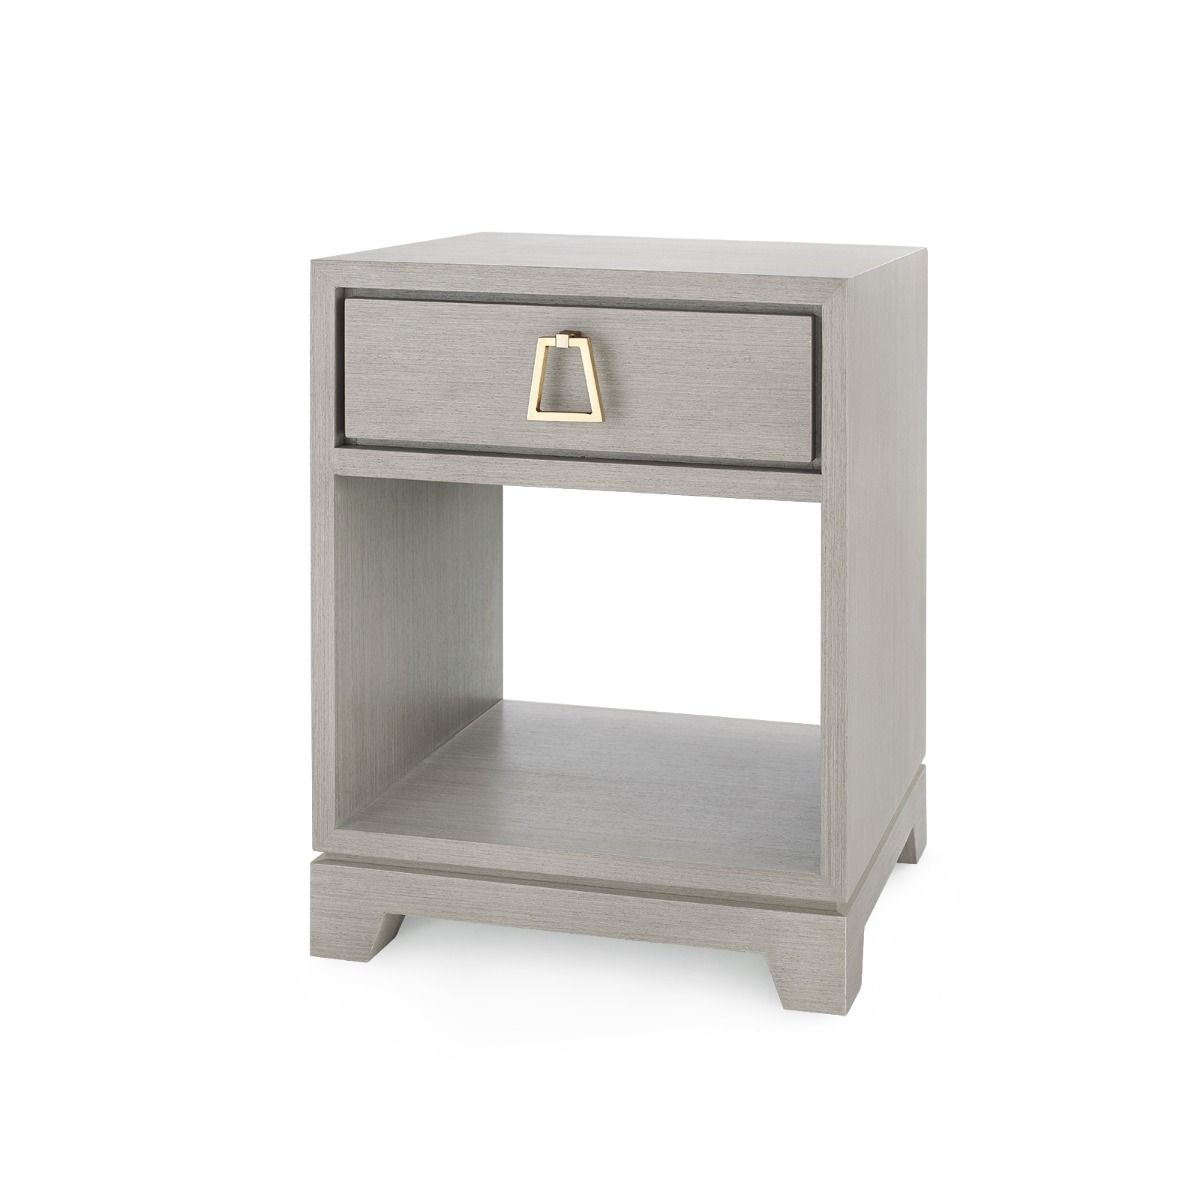 Bungalow 5 - Stanford 1-Drawer Side Table - Light Gray